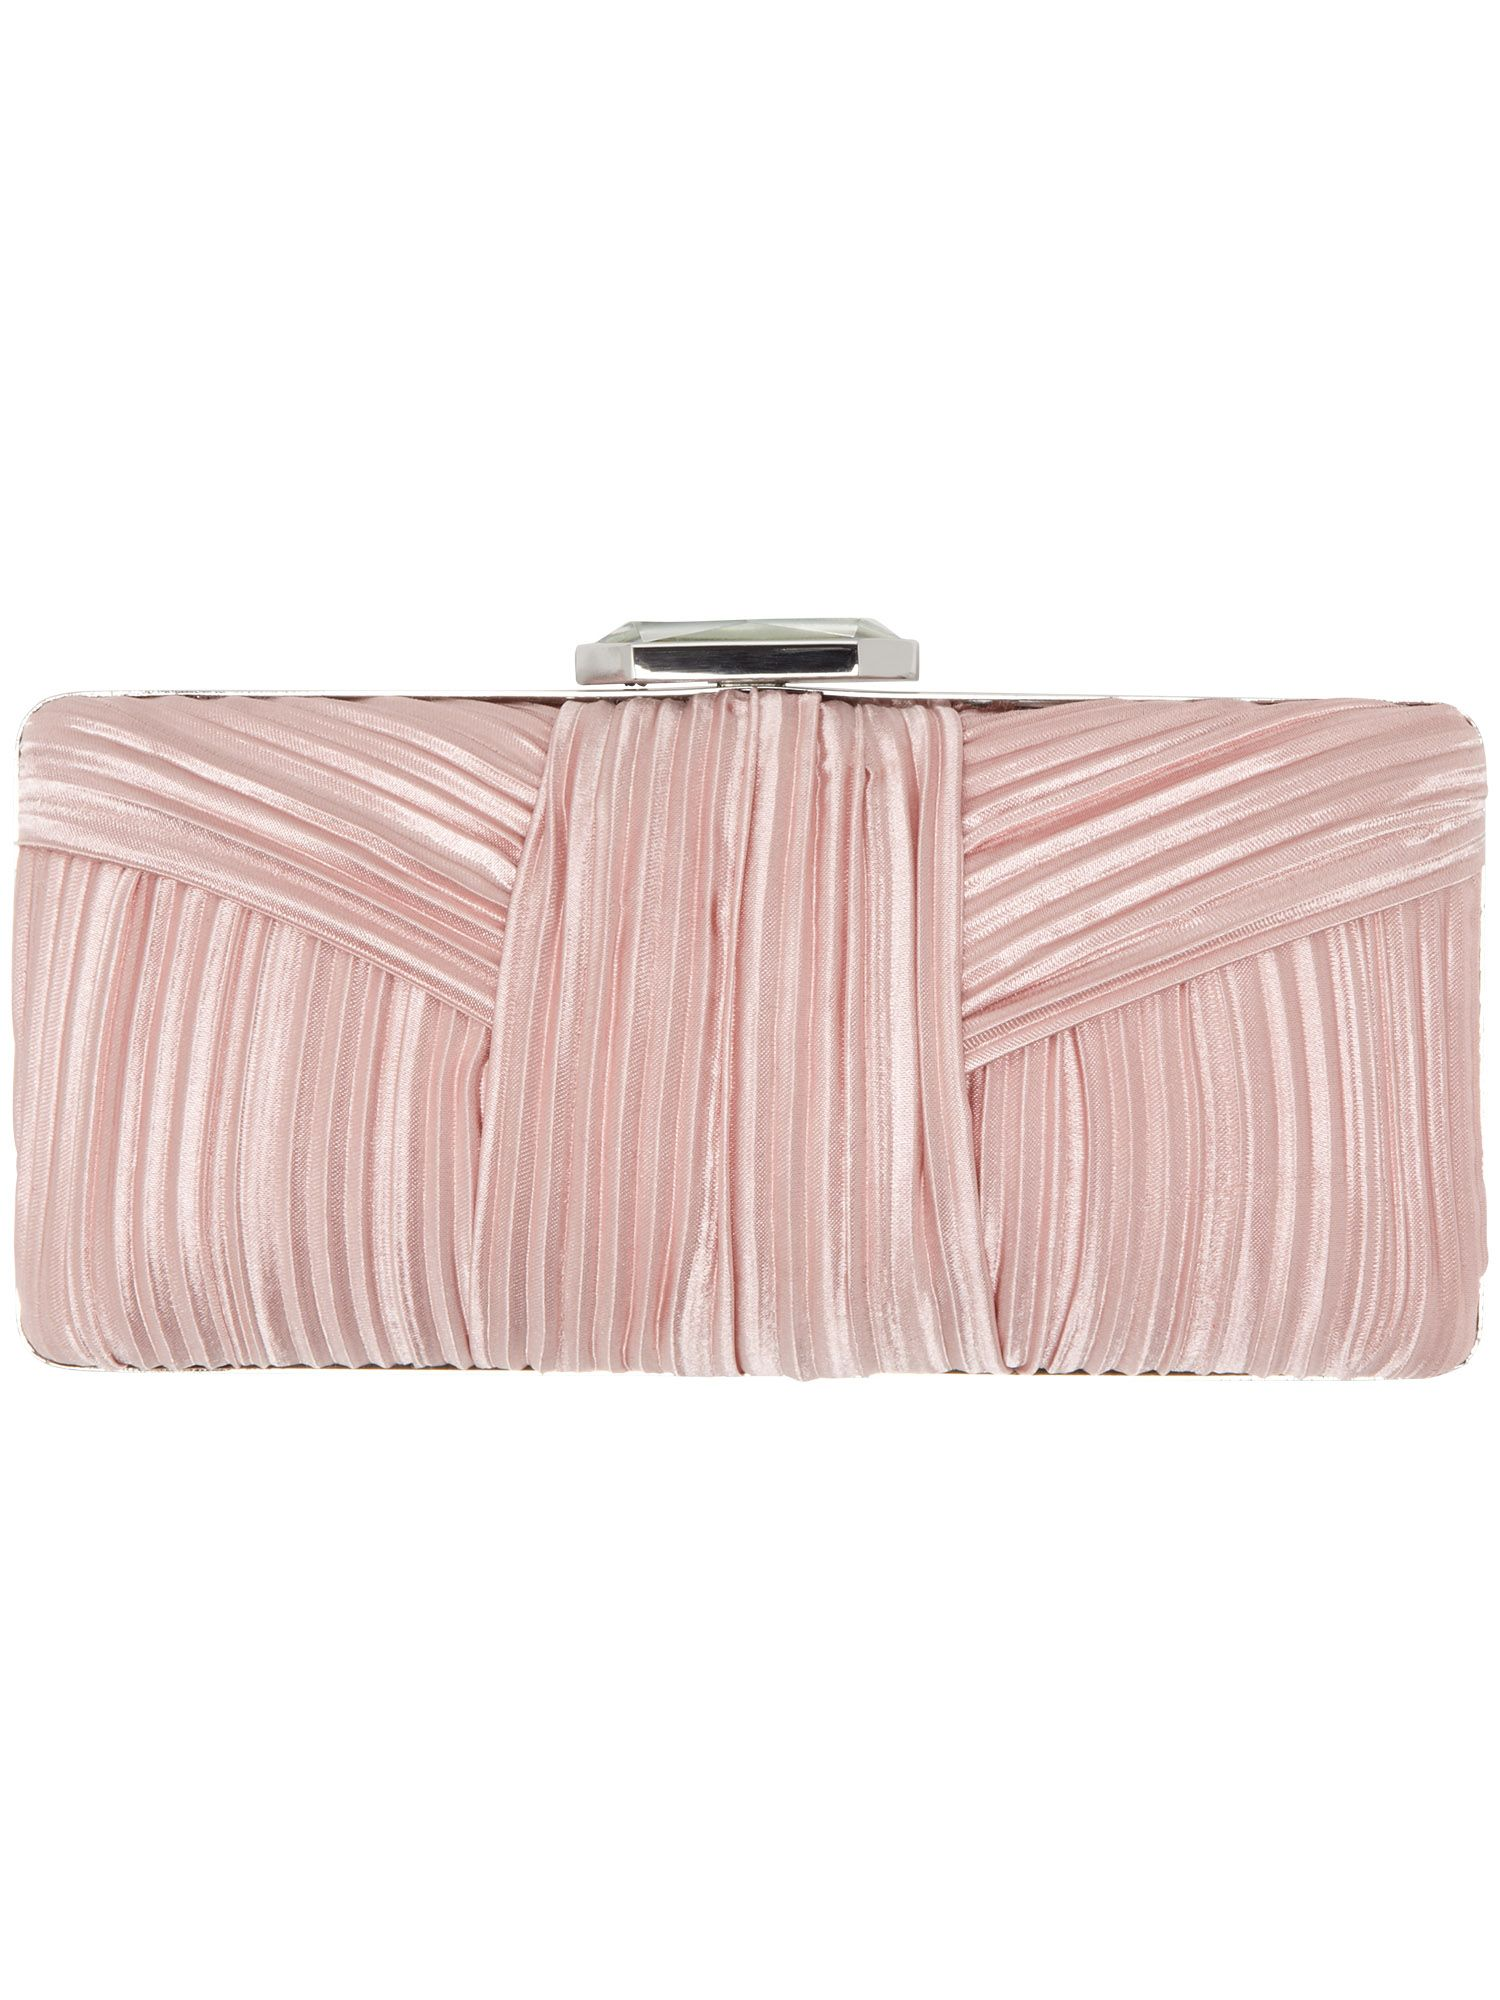 Macy jewel clasp clutch bag